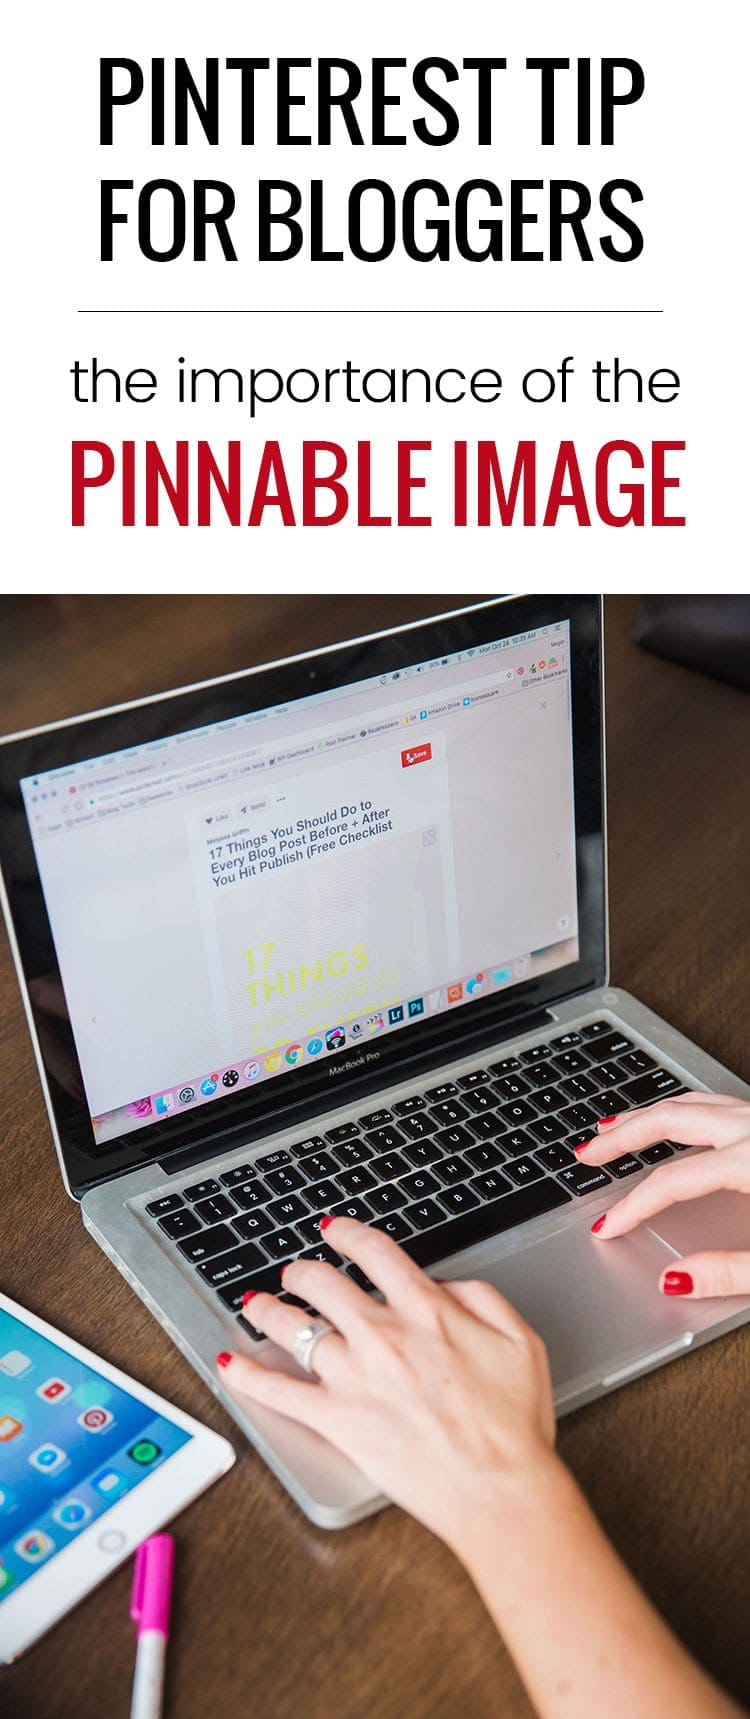 Pinterest tip for bloggers: the importance of the pinnable image. Learn why it is important to always have one in every blog post, and how you can experiment with more than one!